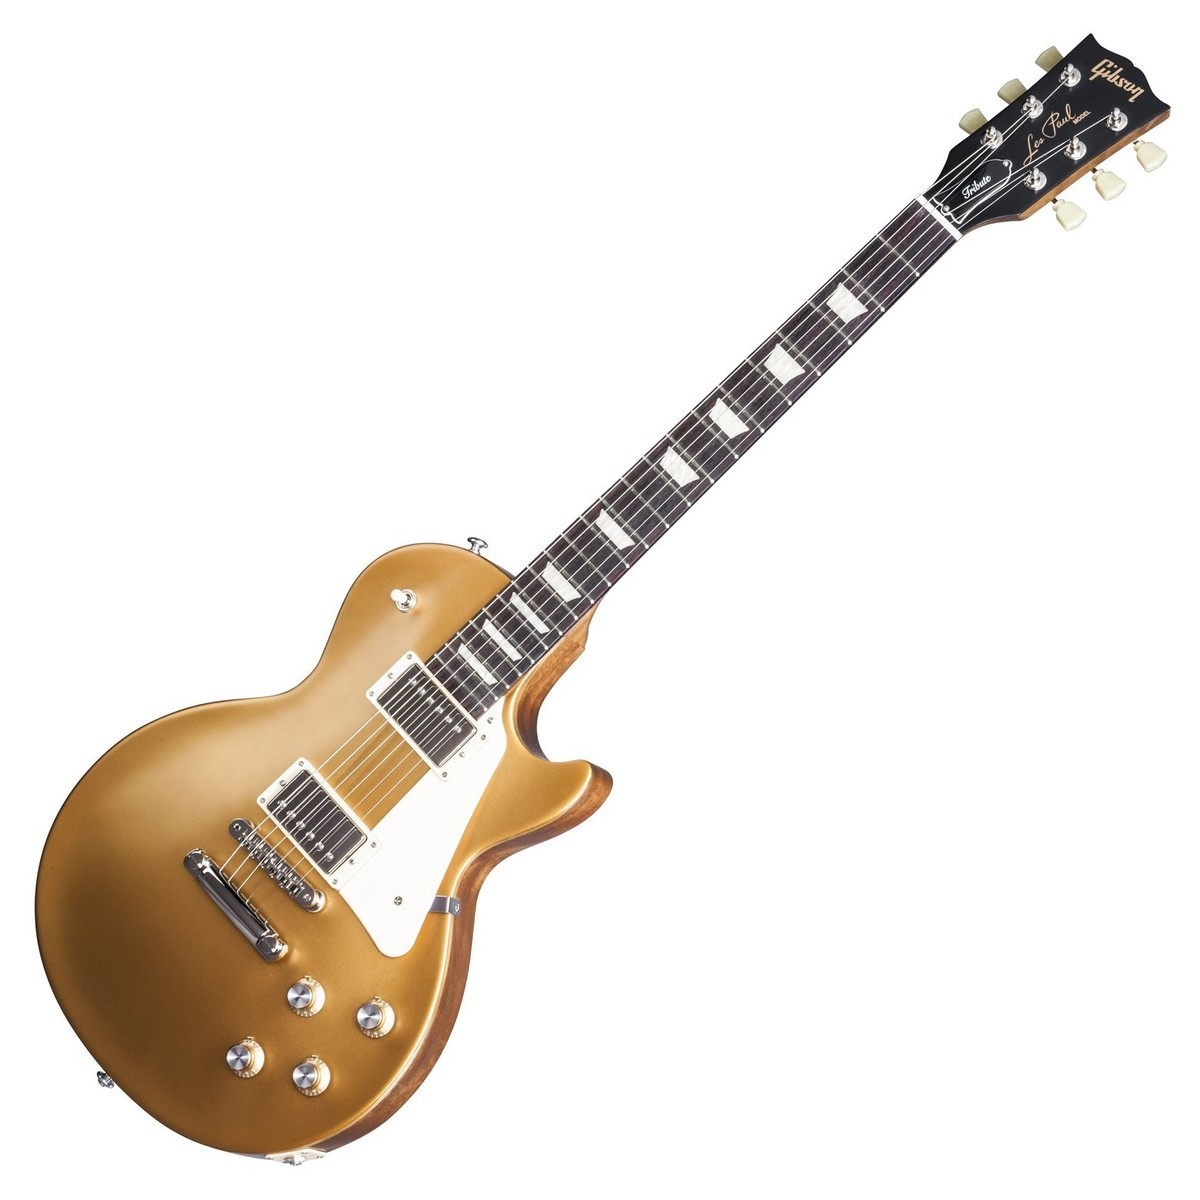 gibson les paul tribute t electric guitar satin gold top 2017 at